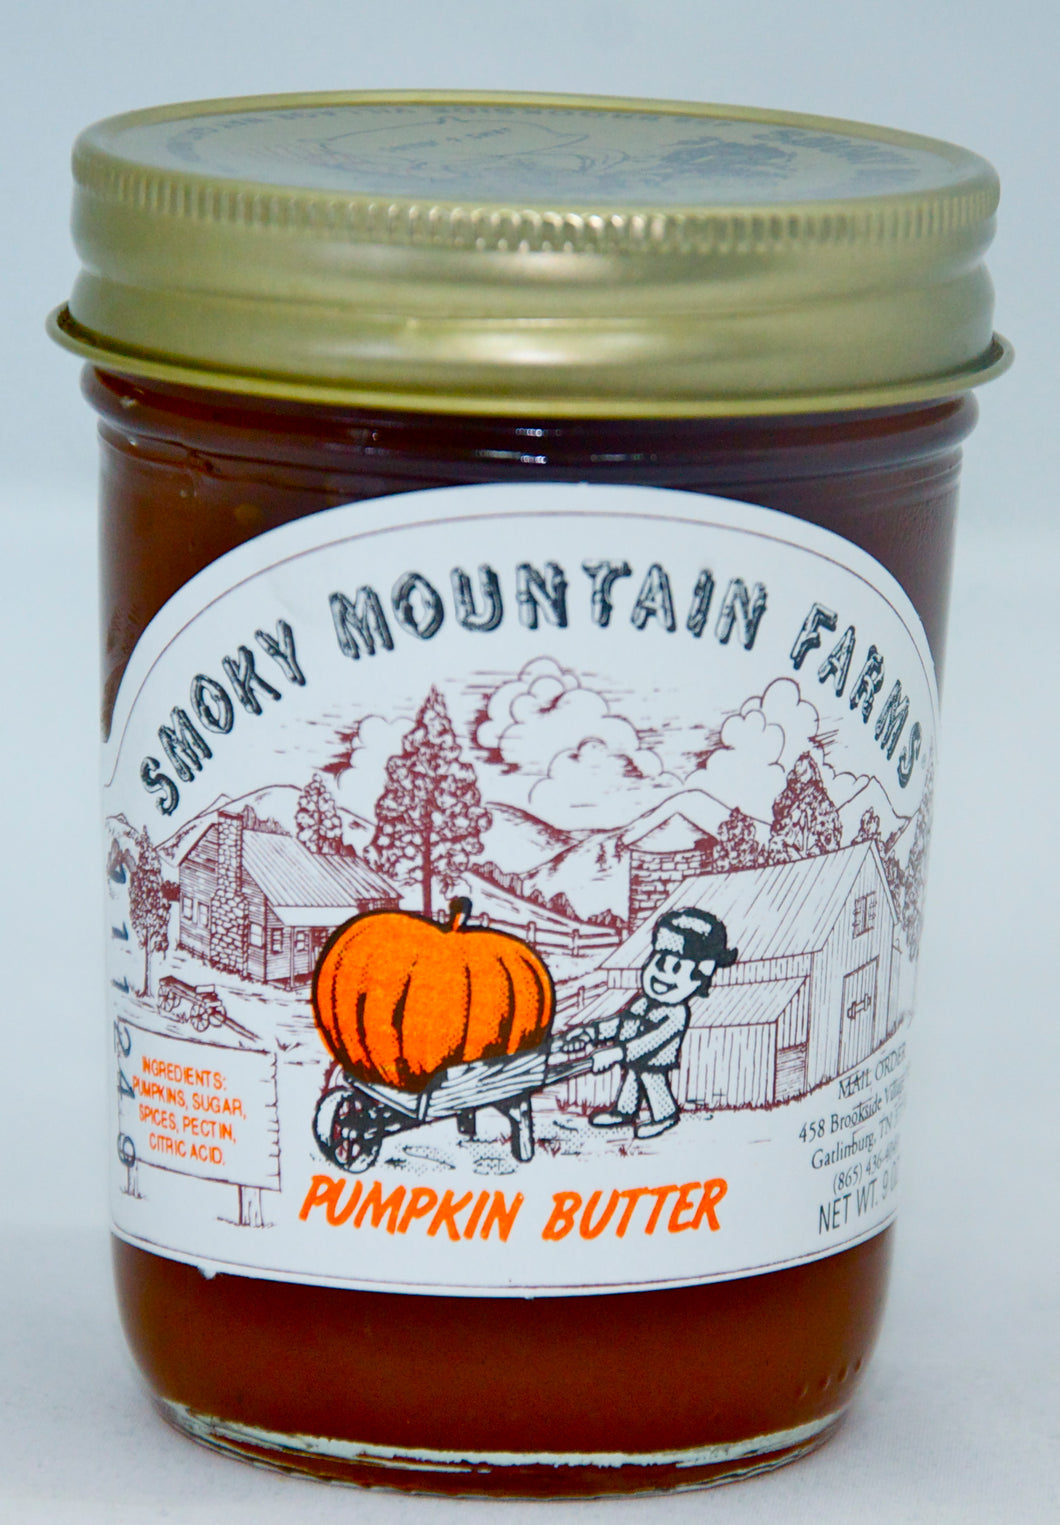 Smoky Mountain Farms Pumpkin Butter